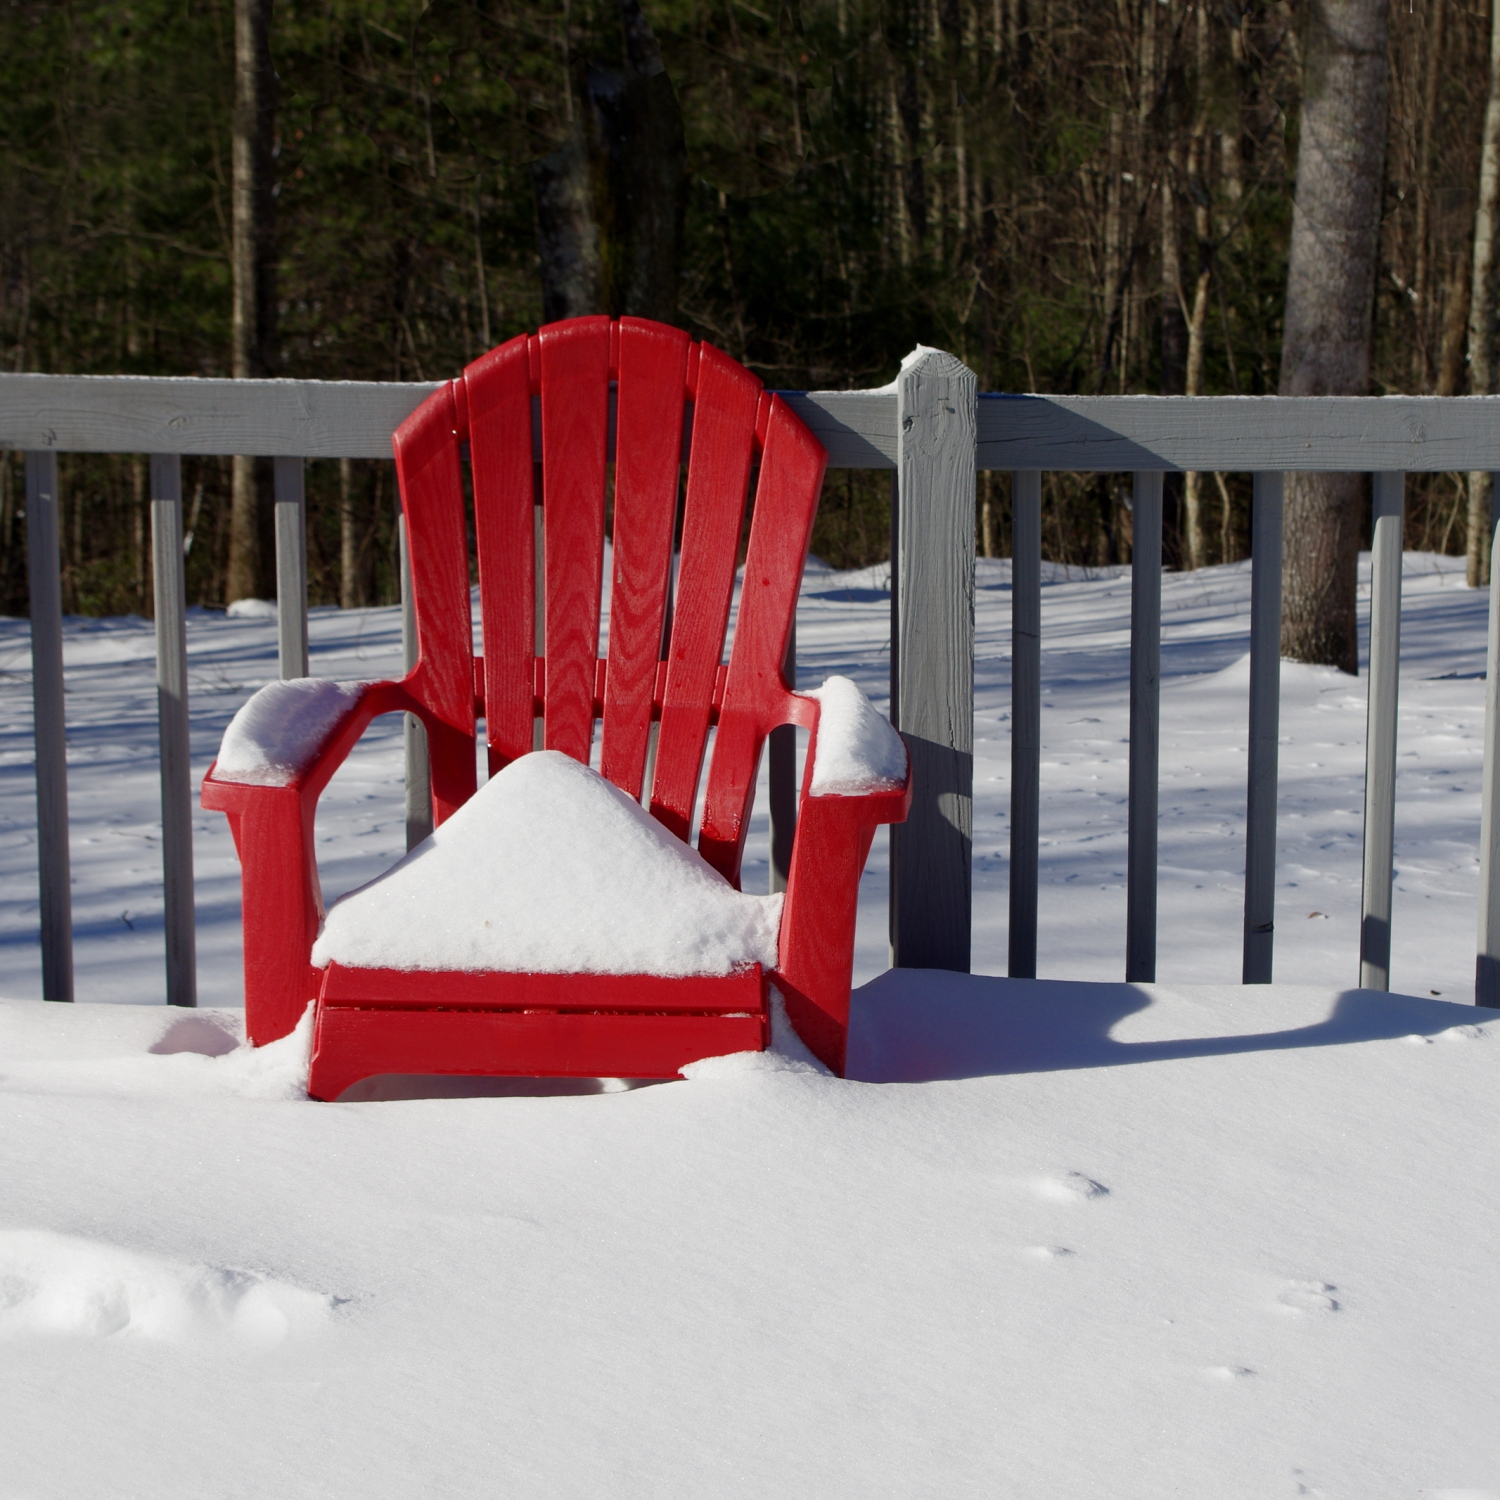 A red chair covered in snow